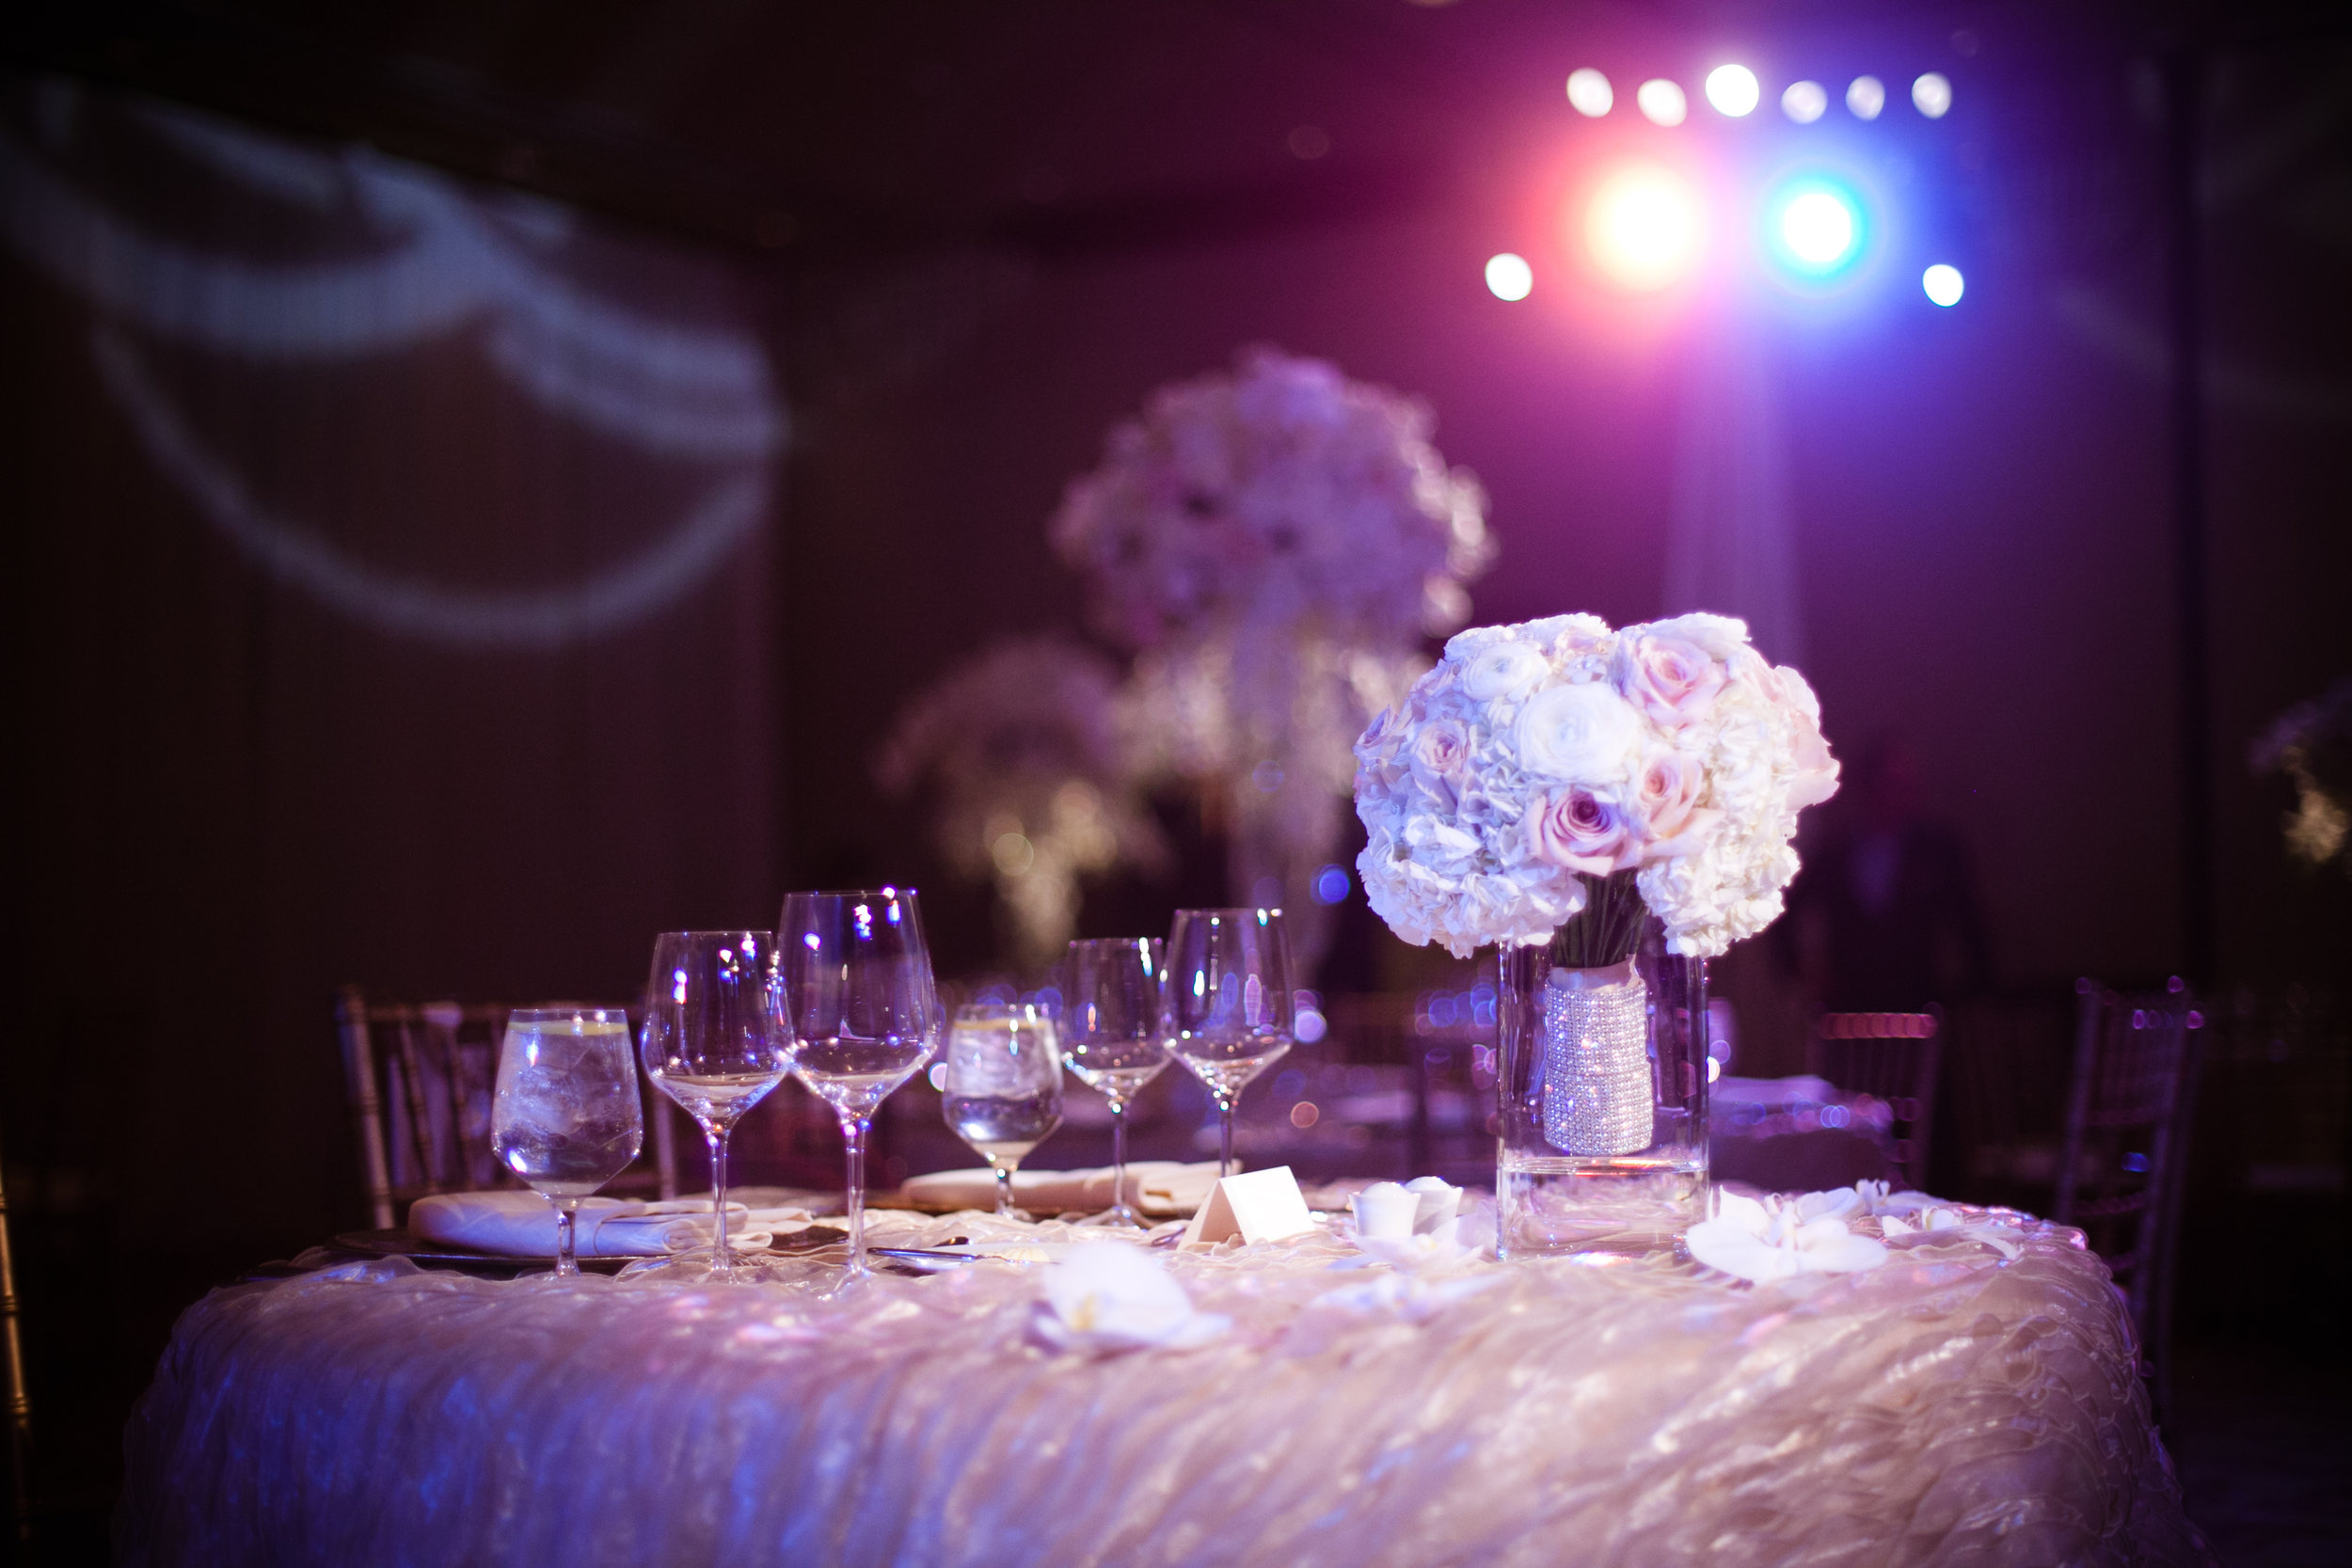 25 sweetheart table sweetheart table in the middle simple sweetheart table elegant sweetheart table Christine Johnson Photography Life Design Events.jpg